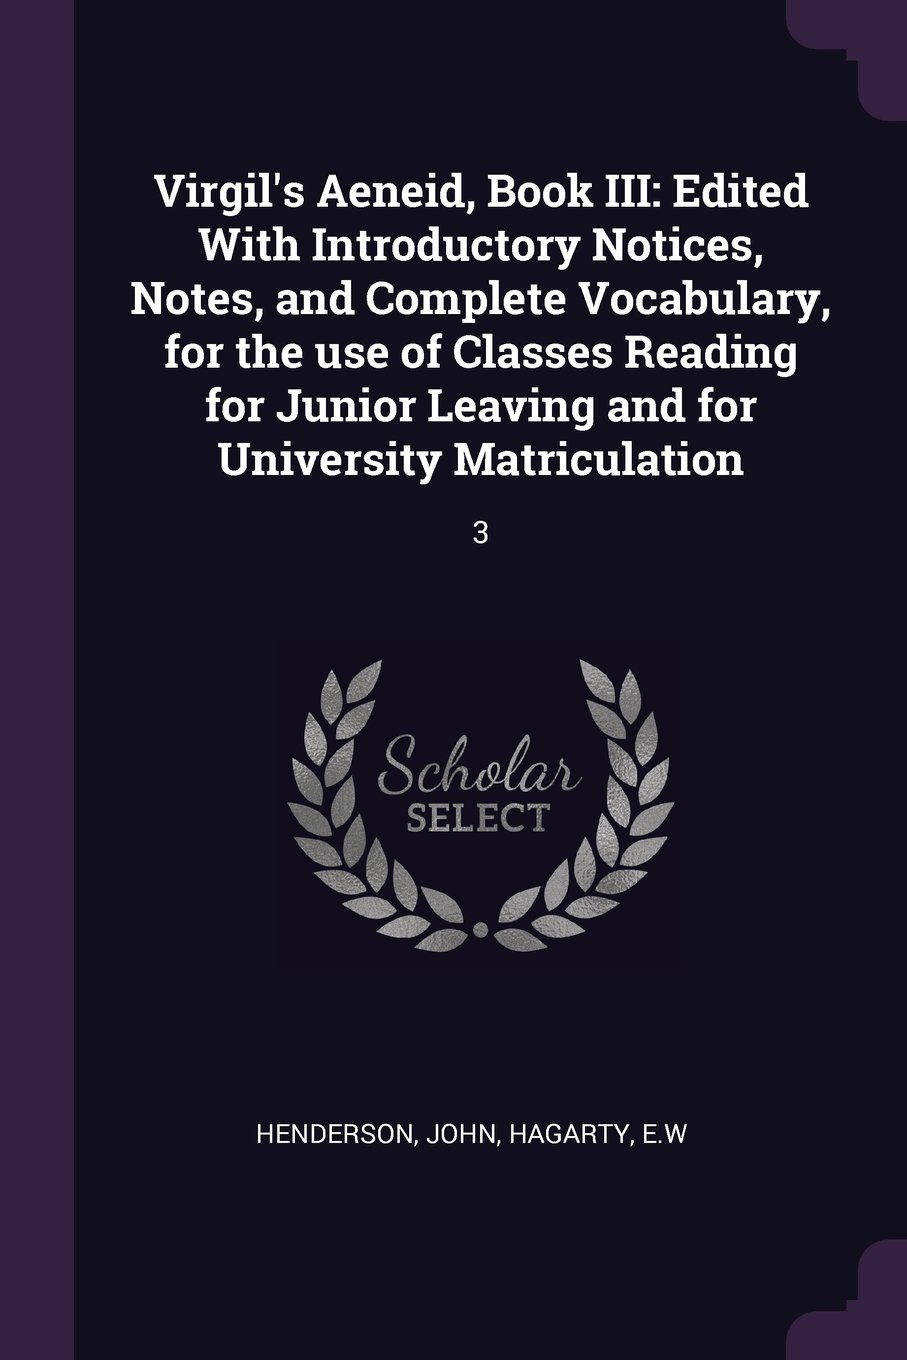 Virgil's Aeneid, Book III: Edited With Introductory Notices, Notes, and Complete Vocabulary, for the use of Classes Reading for Junior Leaving and for University Matriculation: 3 pdf epub